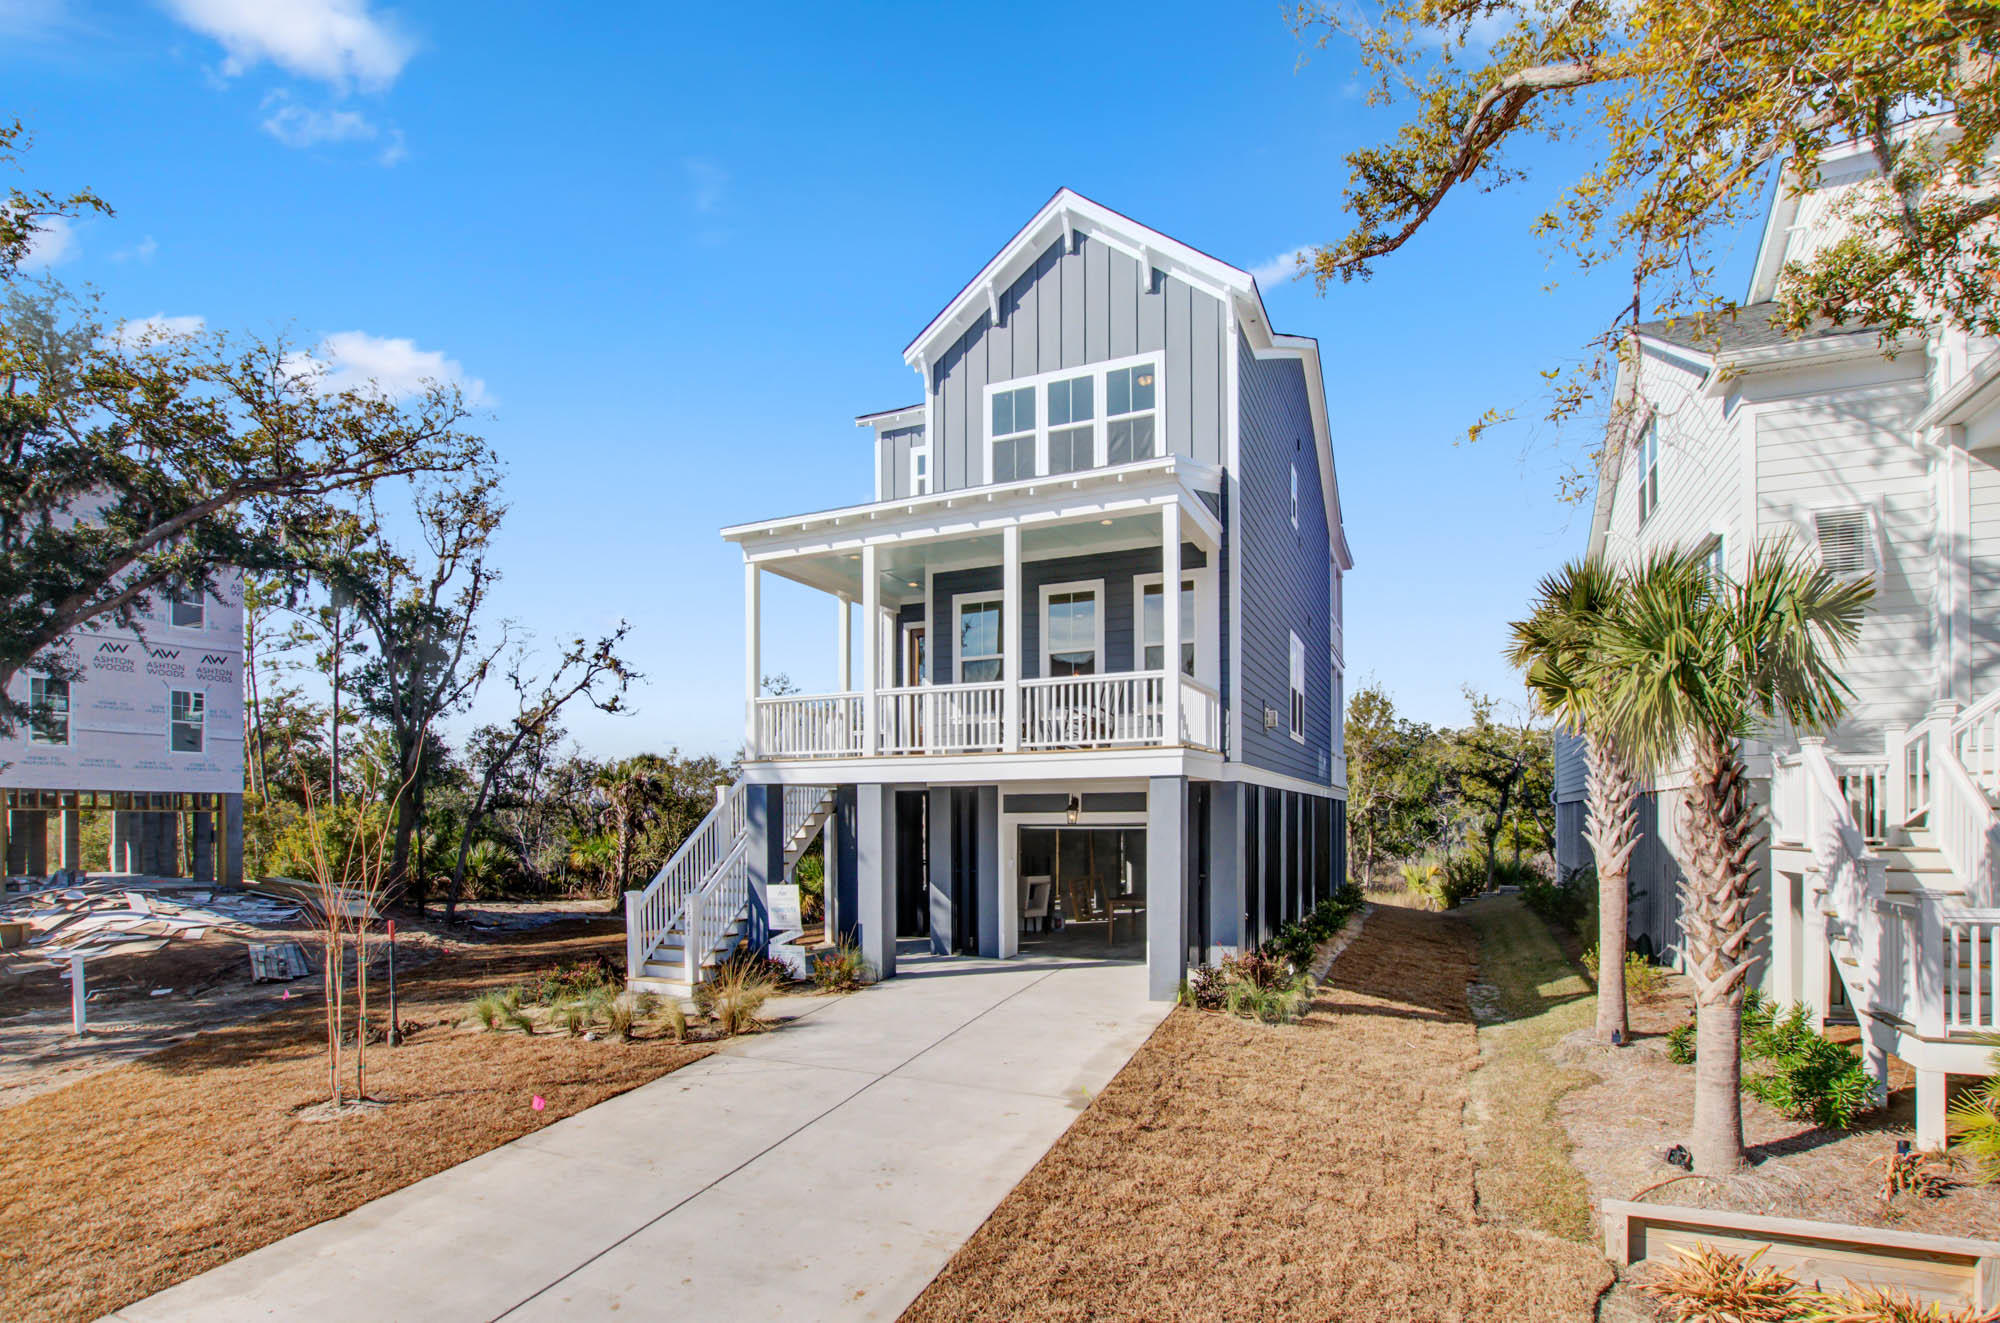 Stratton by the Sound Homes For Sale - 1541 Menhaden, Mount Pleasant, SC - 40